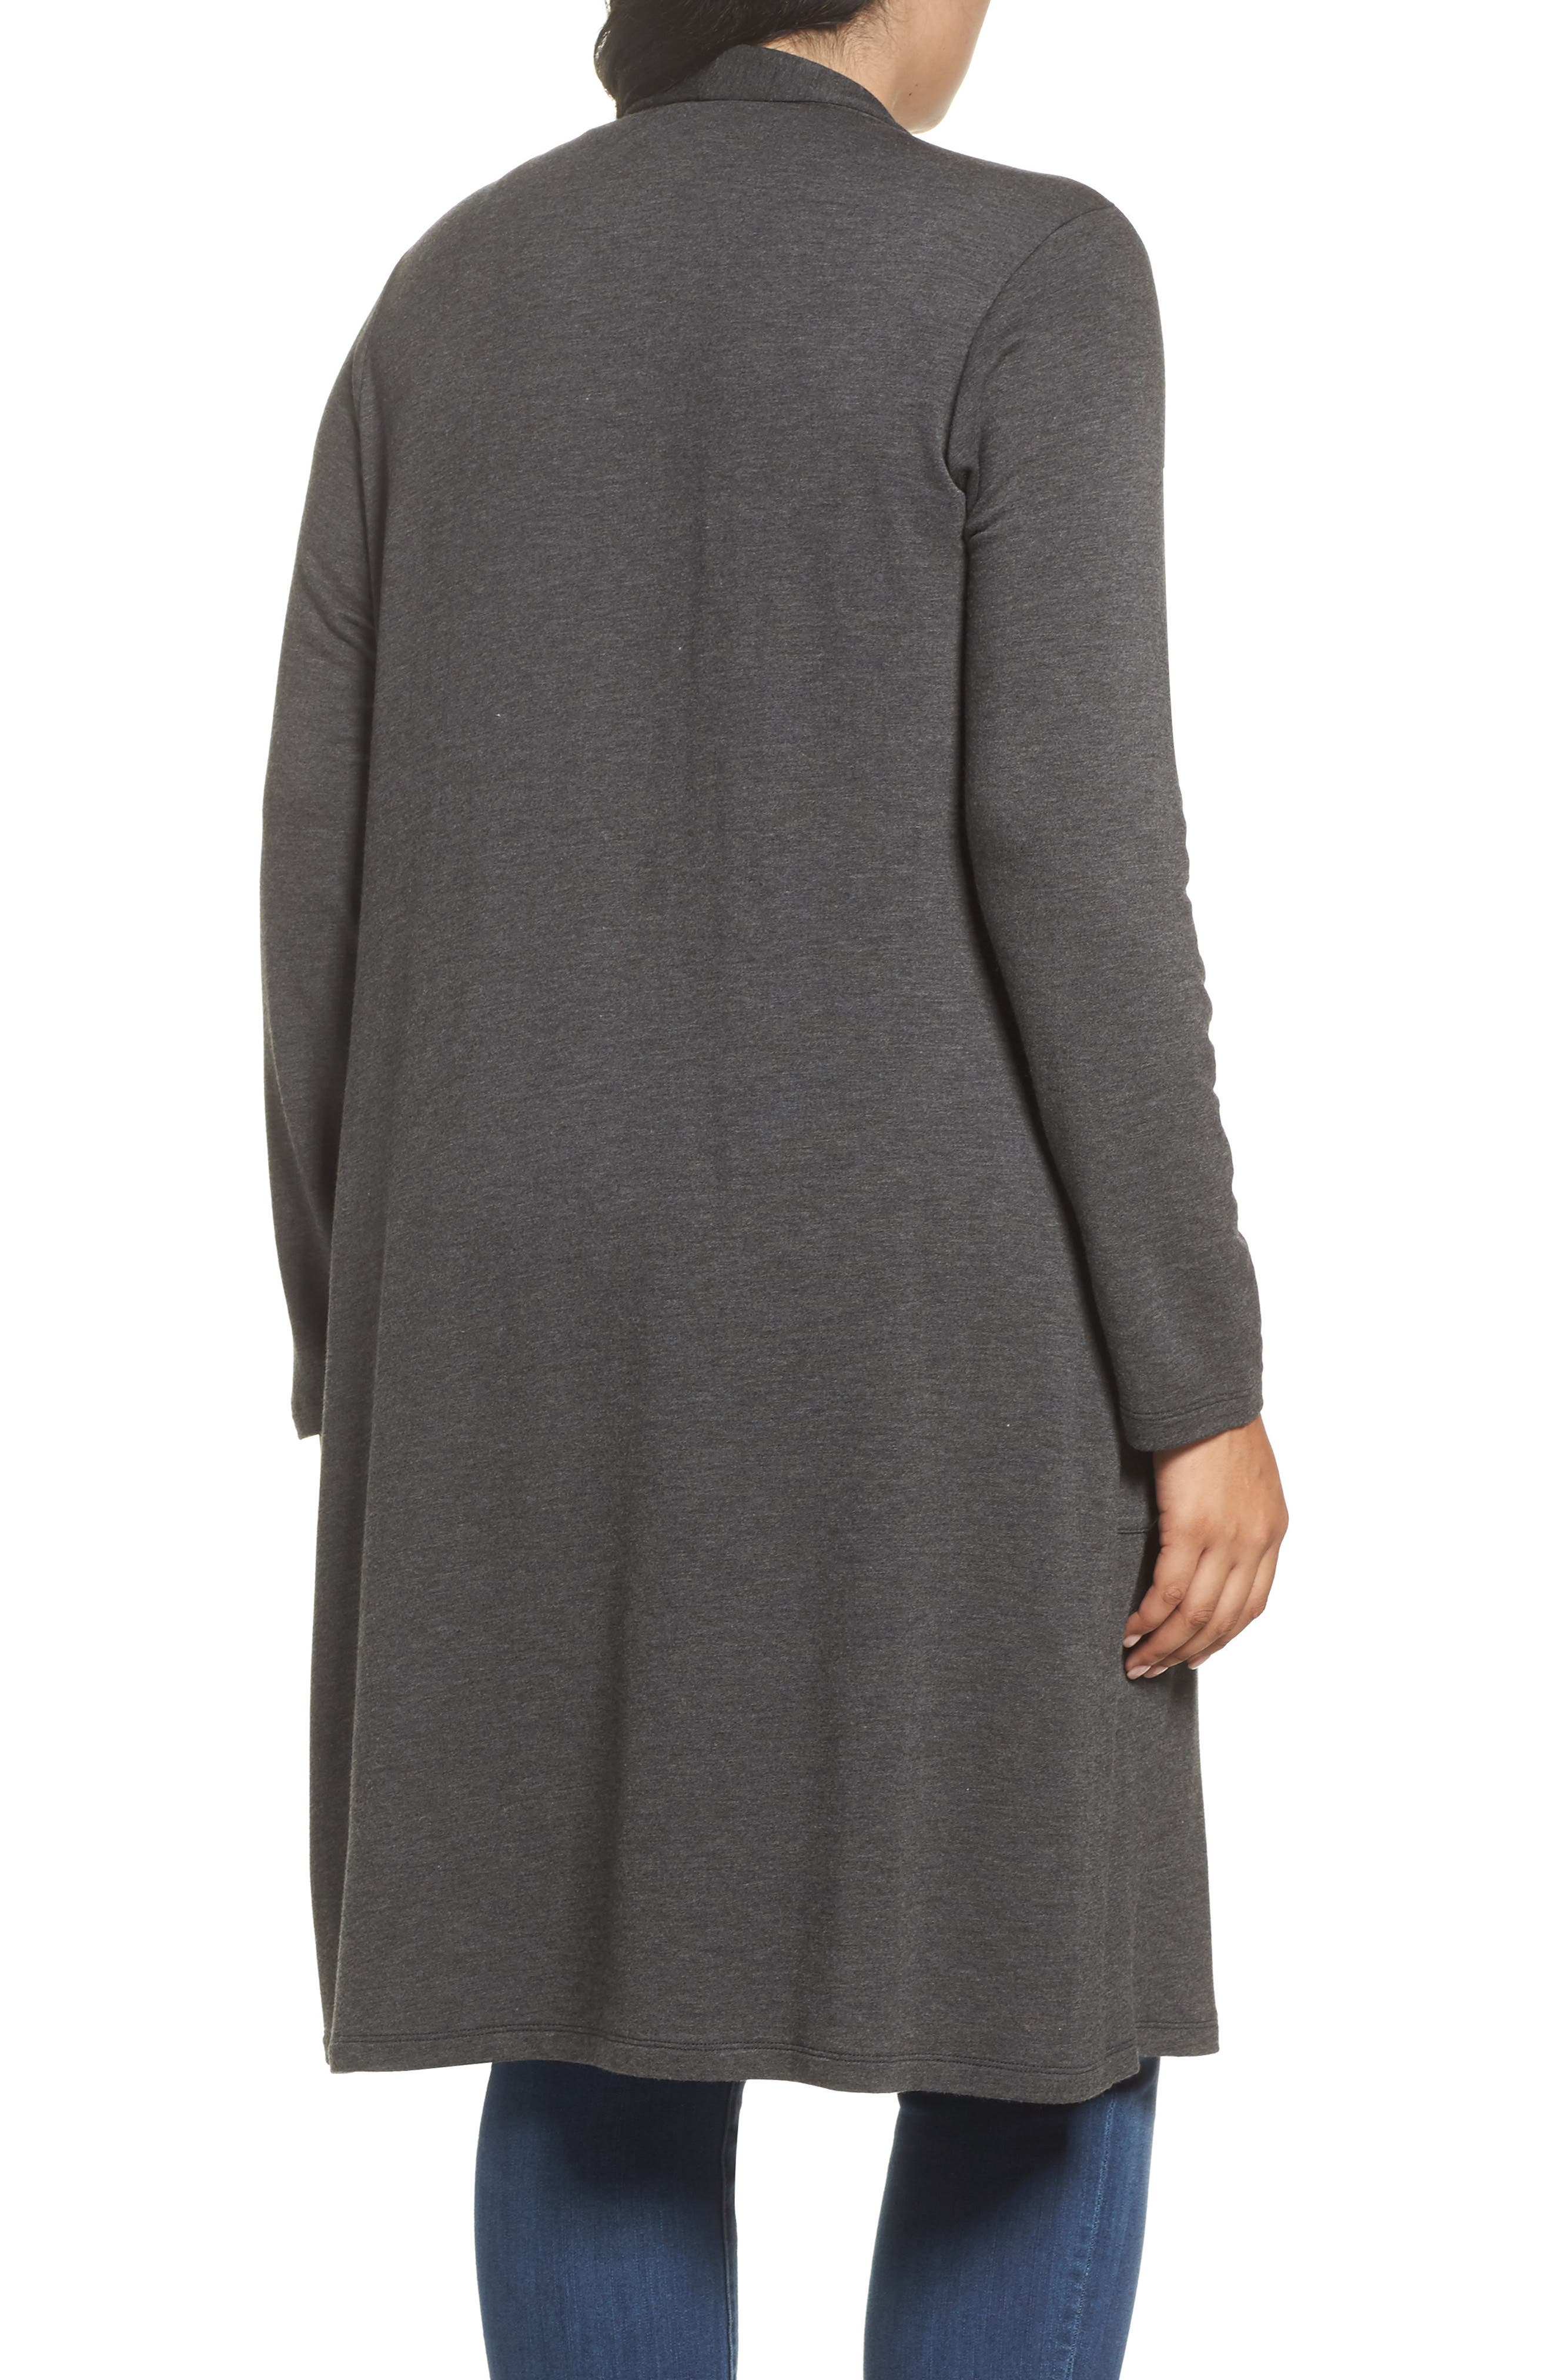 Two-Pocket Stretch Cardigan,                             Alternate thumbnail 2, color,                             Heather Charcoal